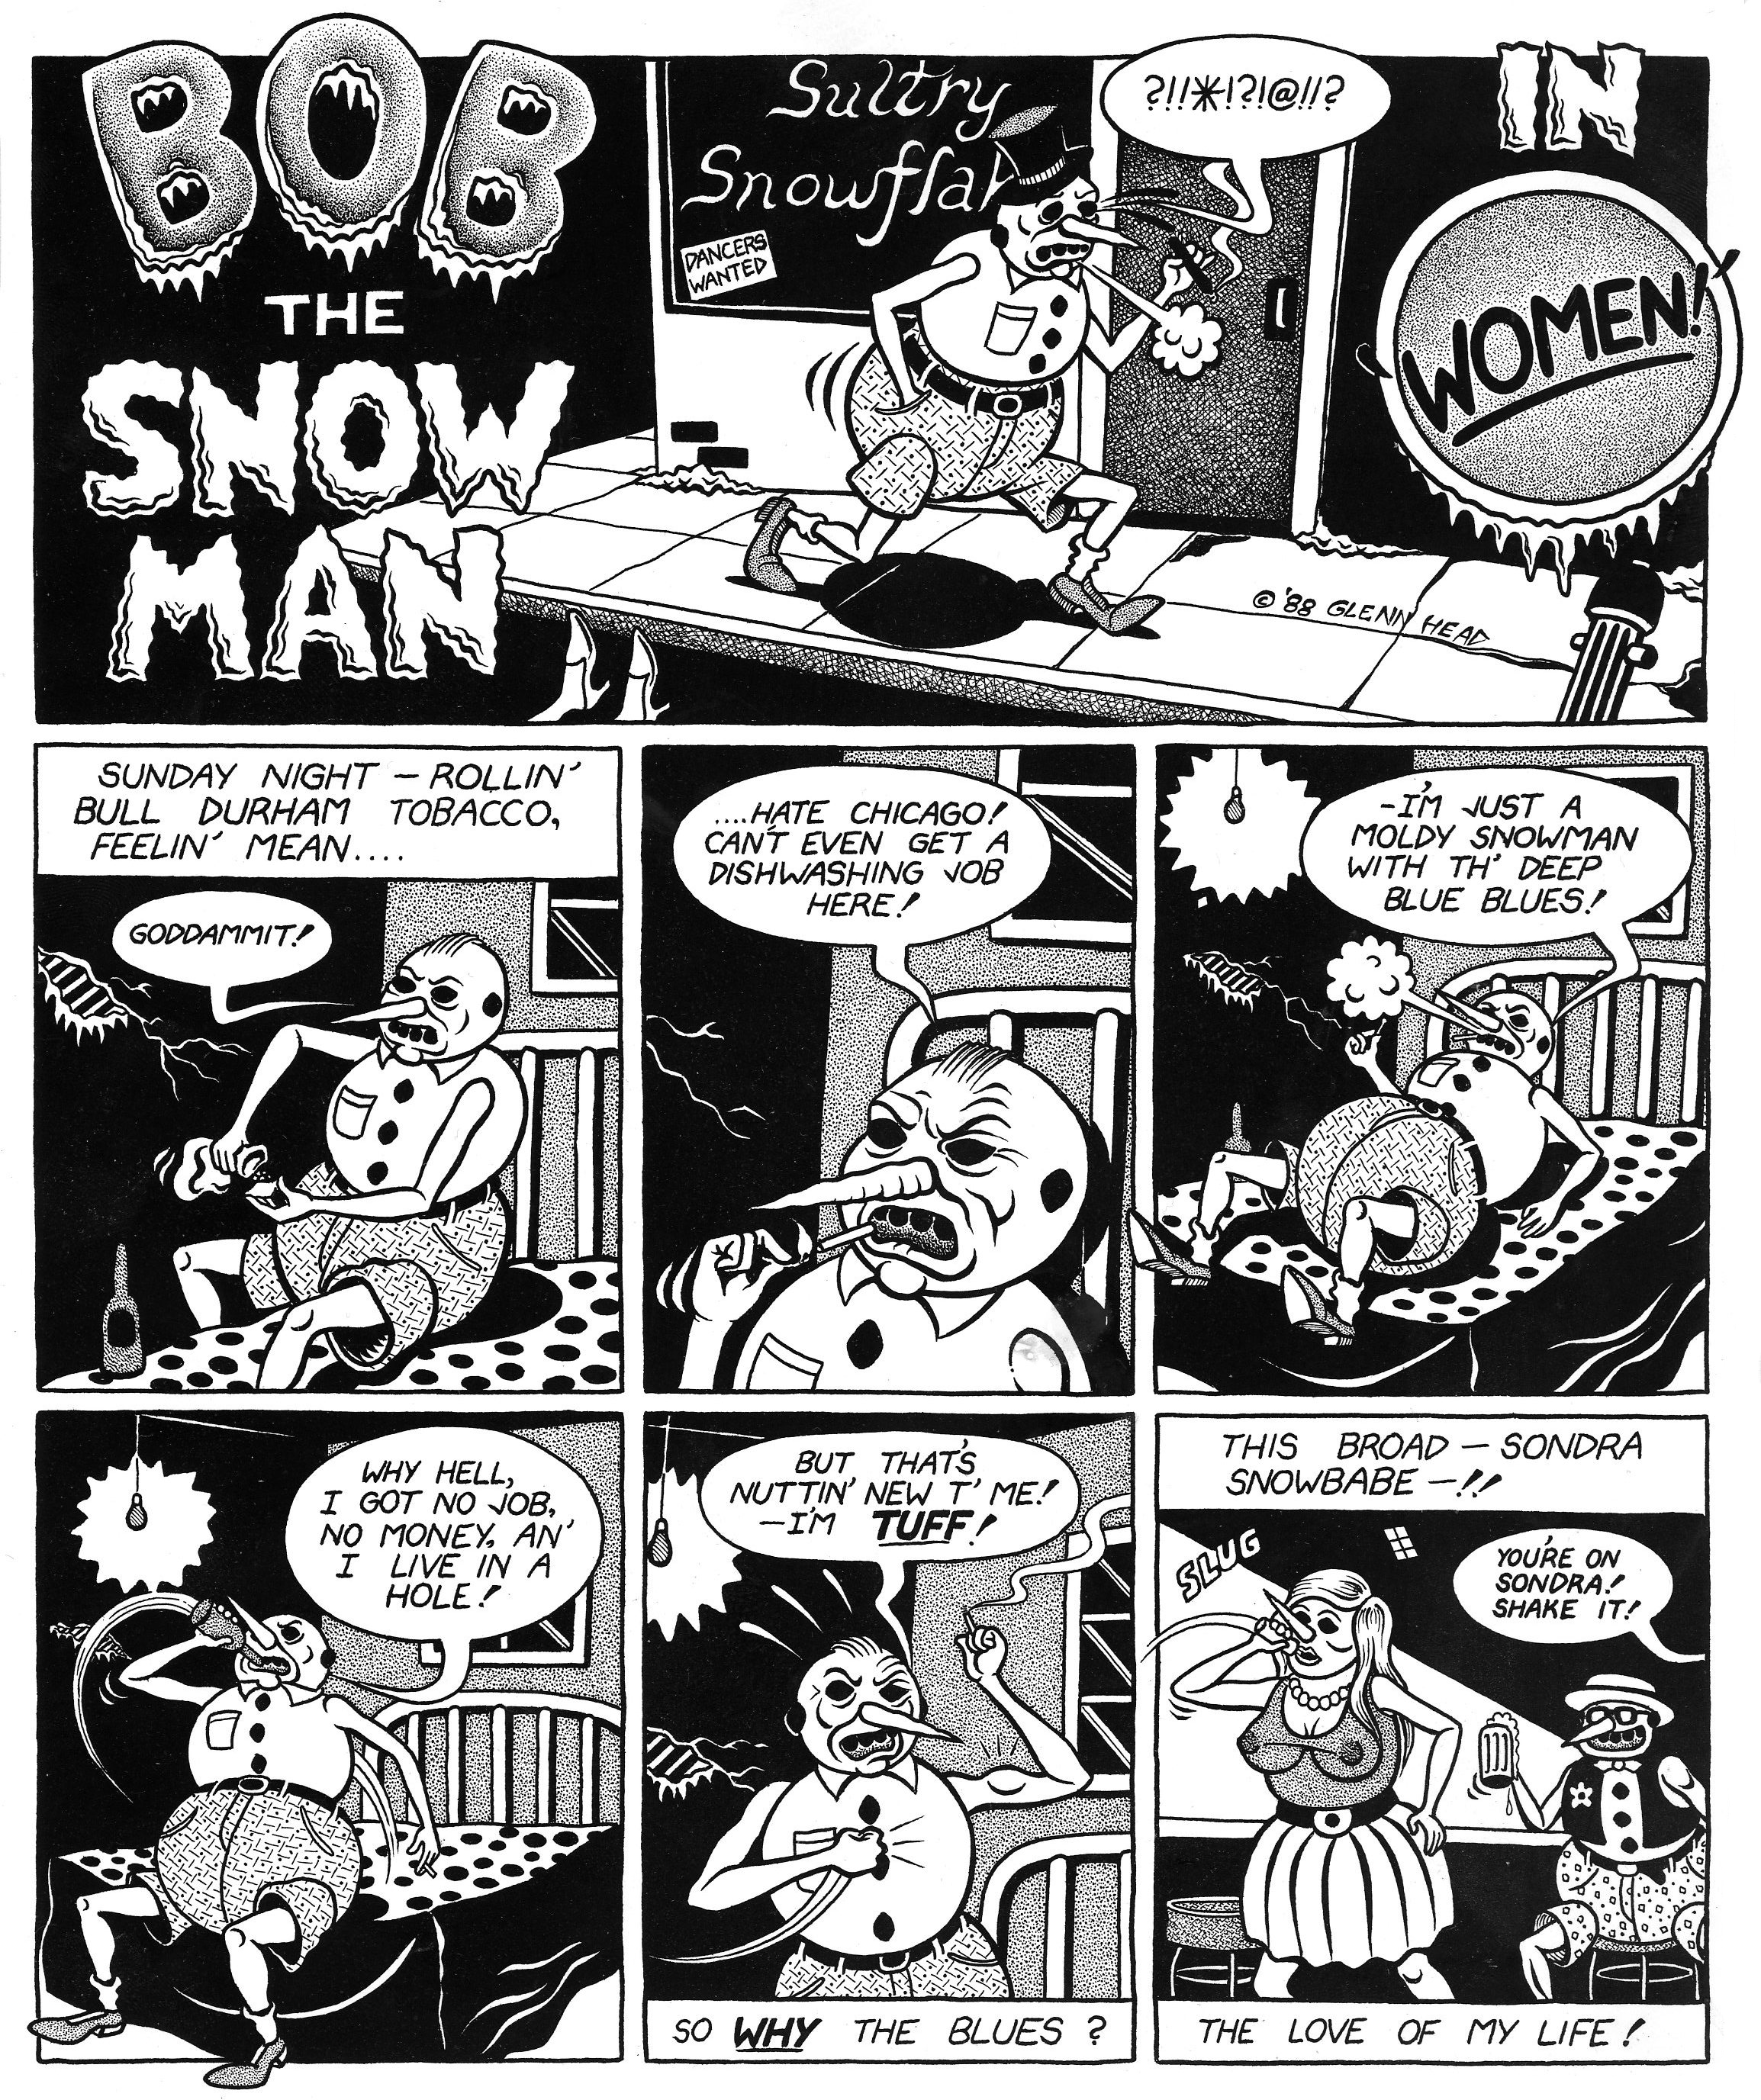 Bob the Snow Man by Glenn Head